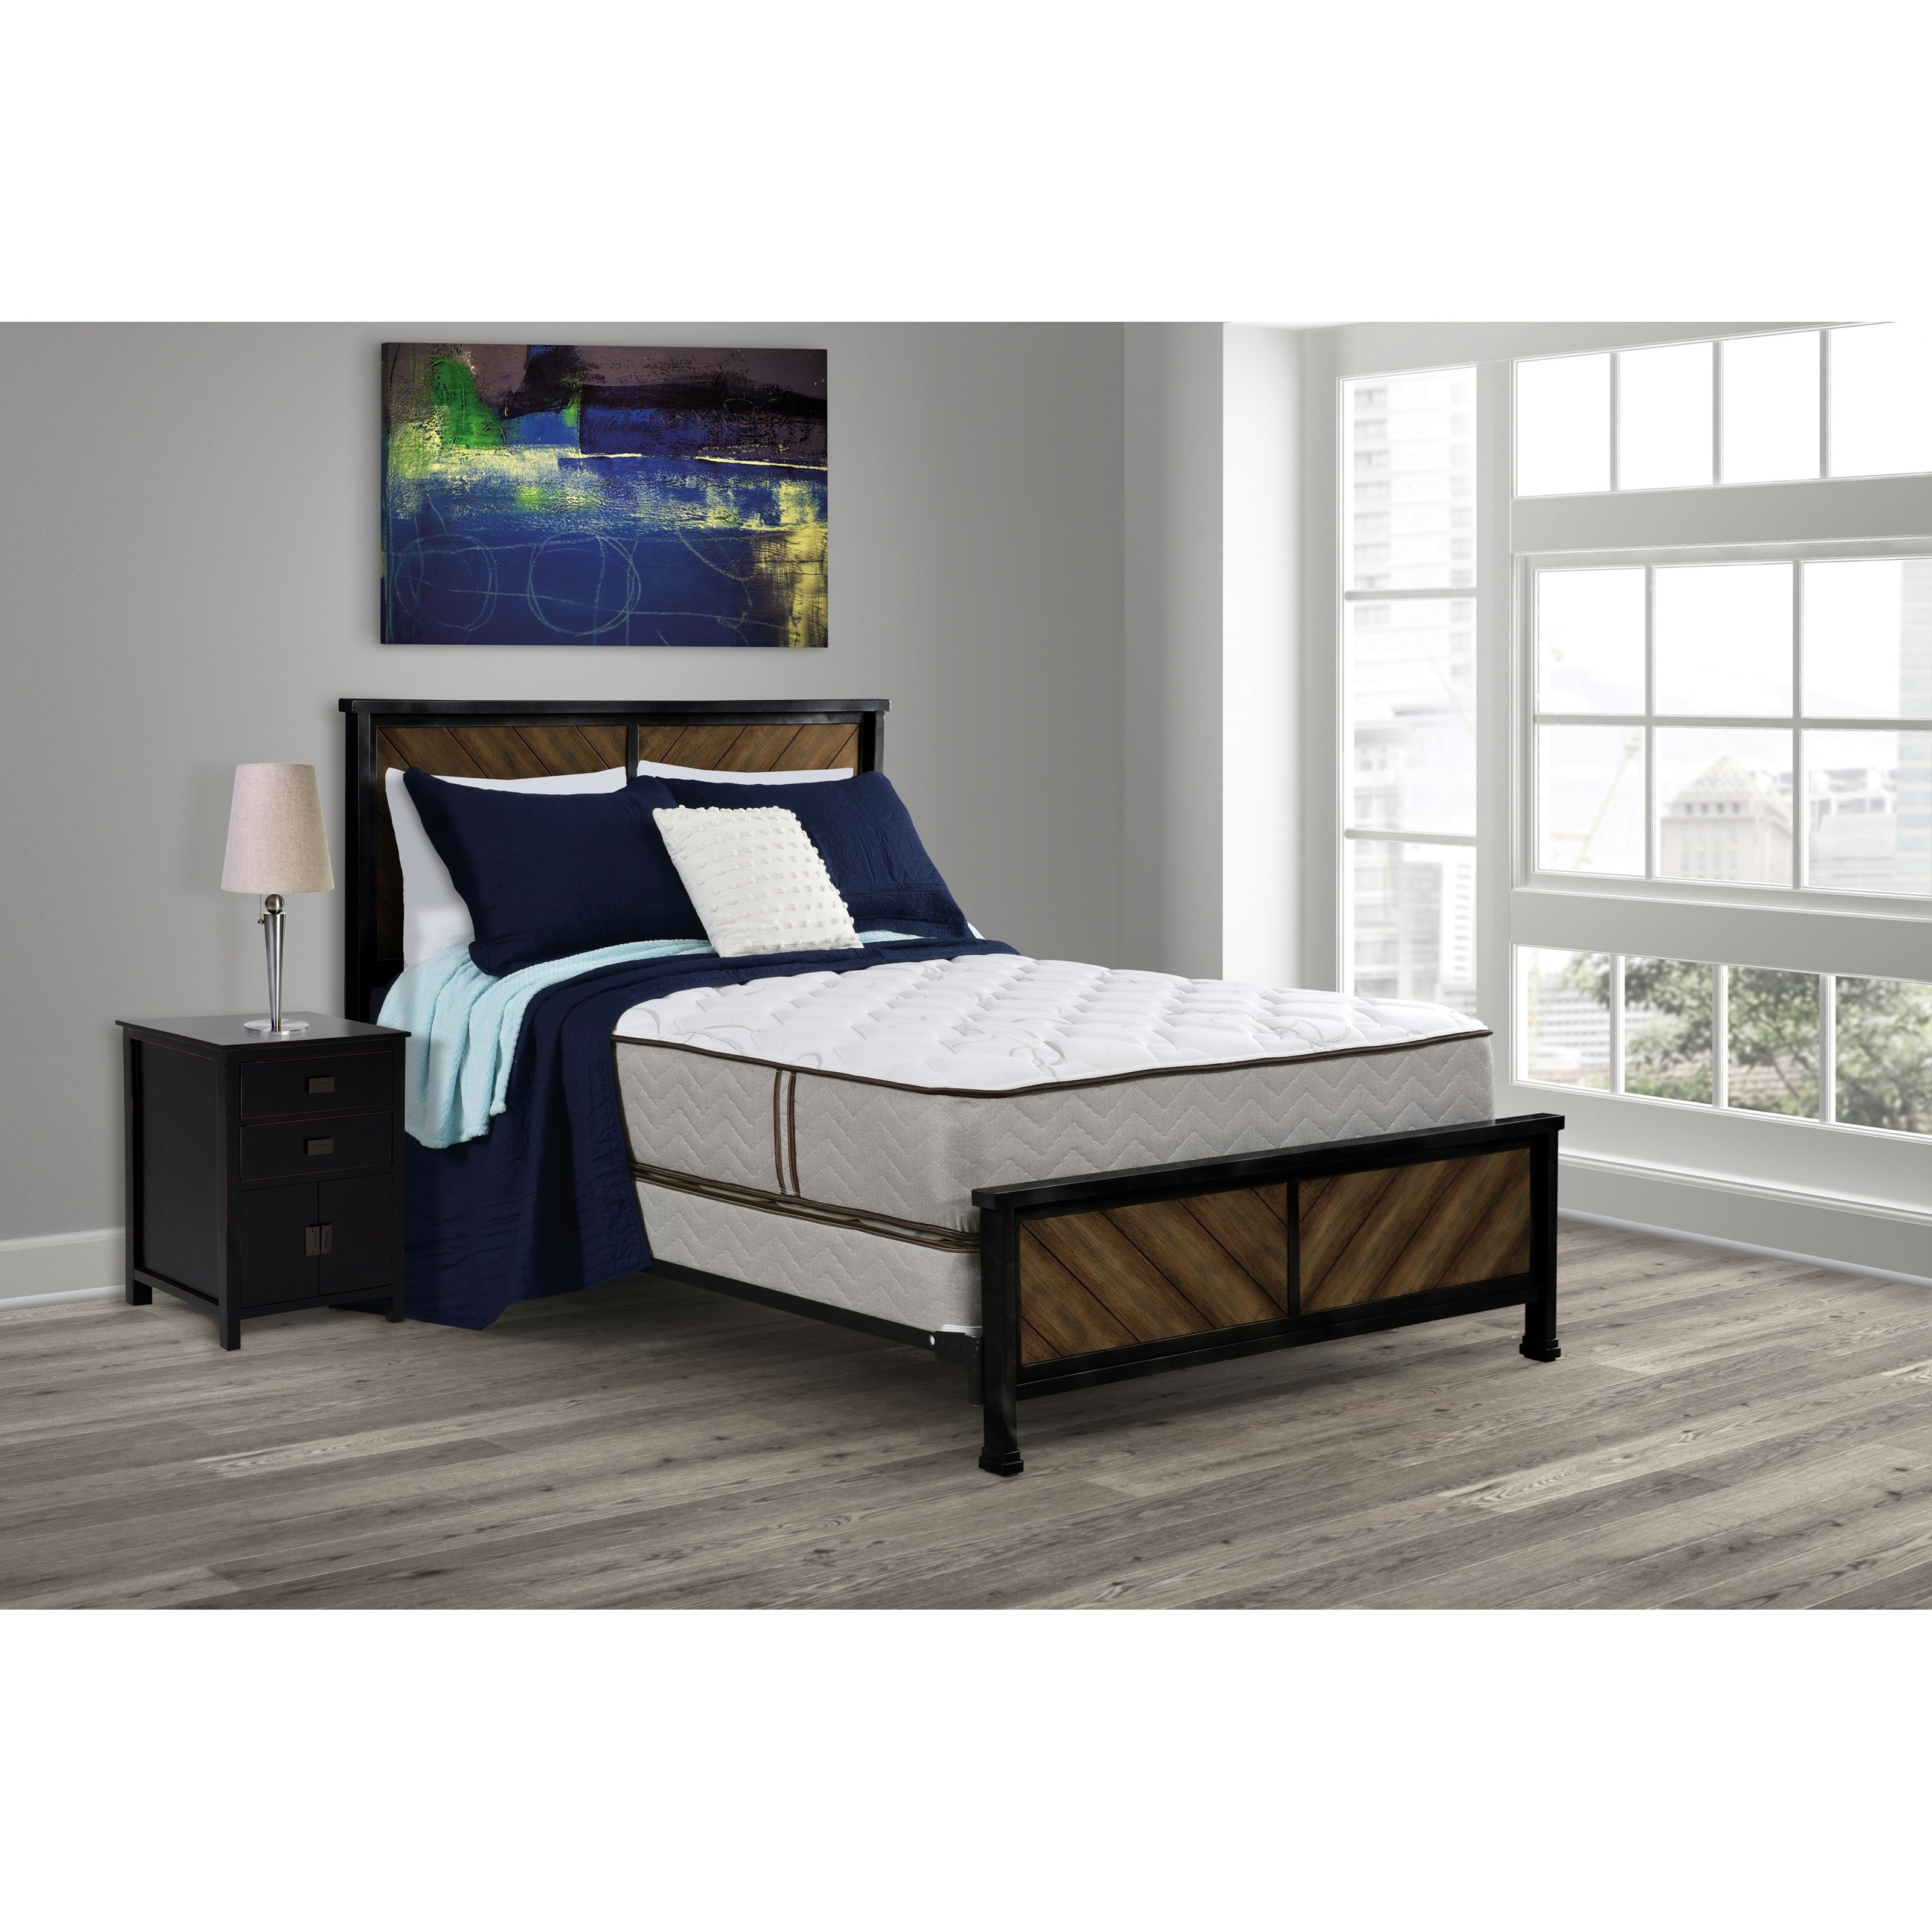 Monarch Elite Plush Premier Full Plush Premier DS Innerspring Mattress by Amish Handcrafted at Saugerties Furniture Mart